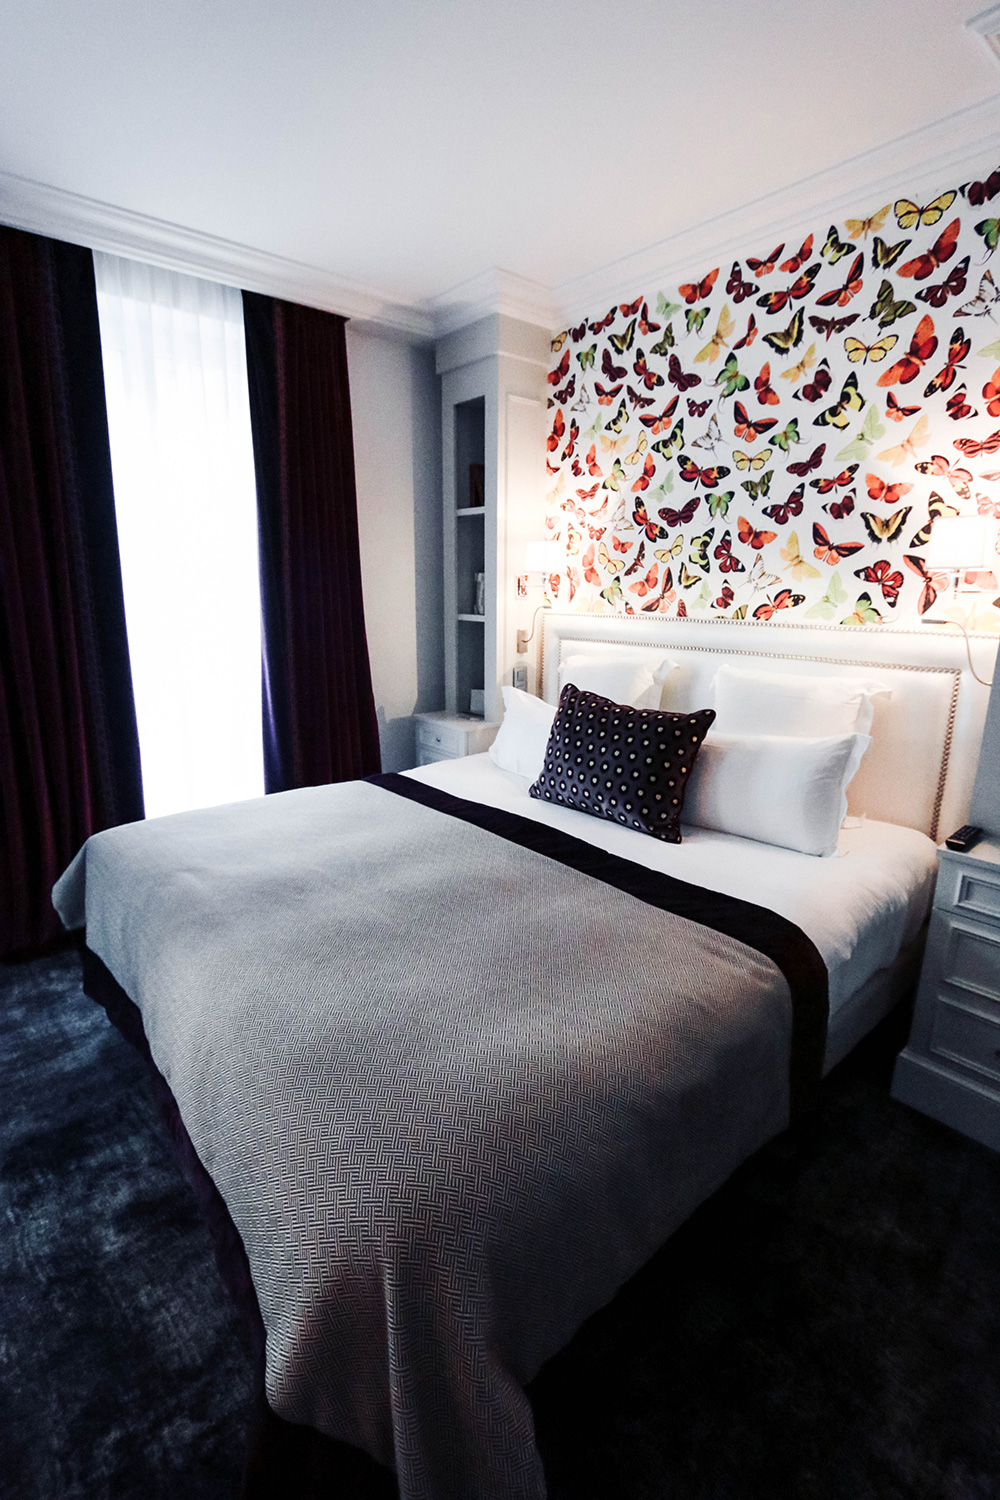 hotel-review-paris-hotel-monge-mademoiselle-stef-2